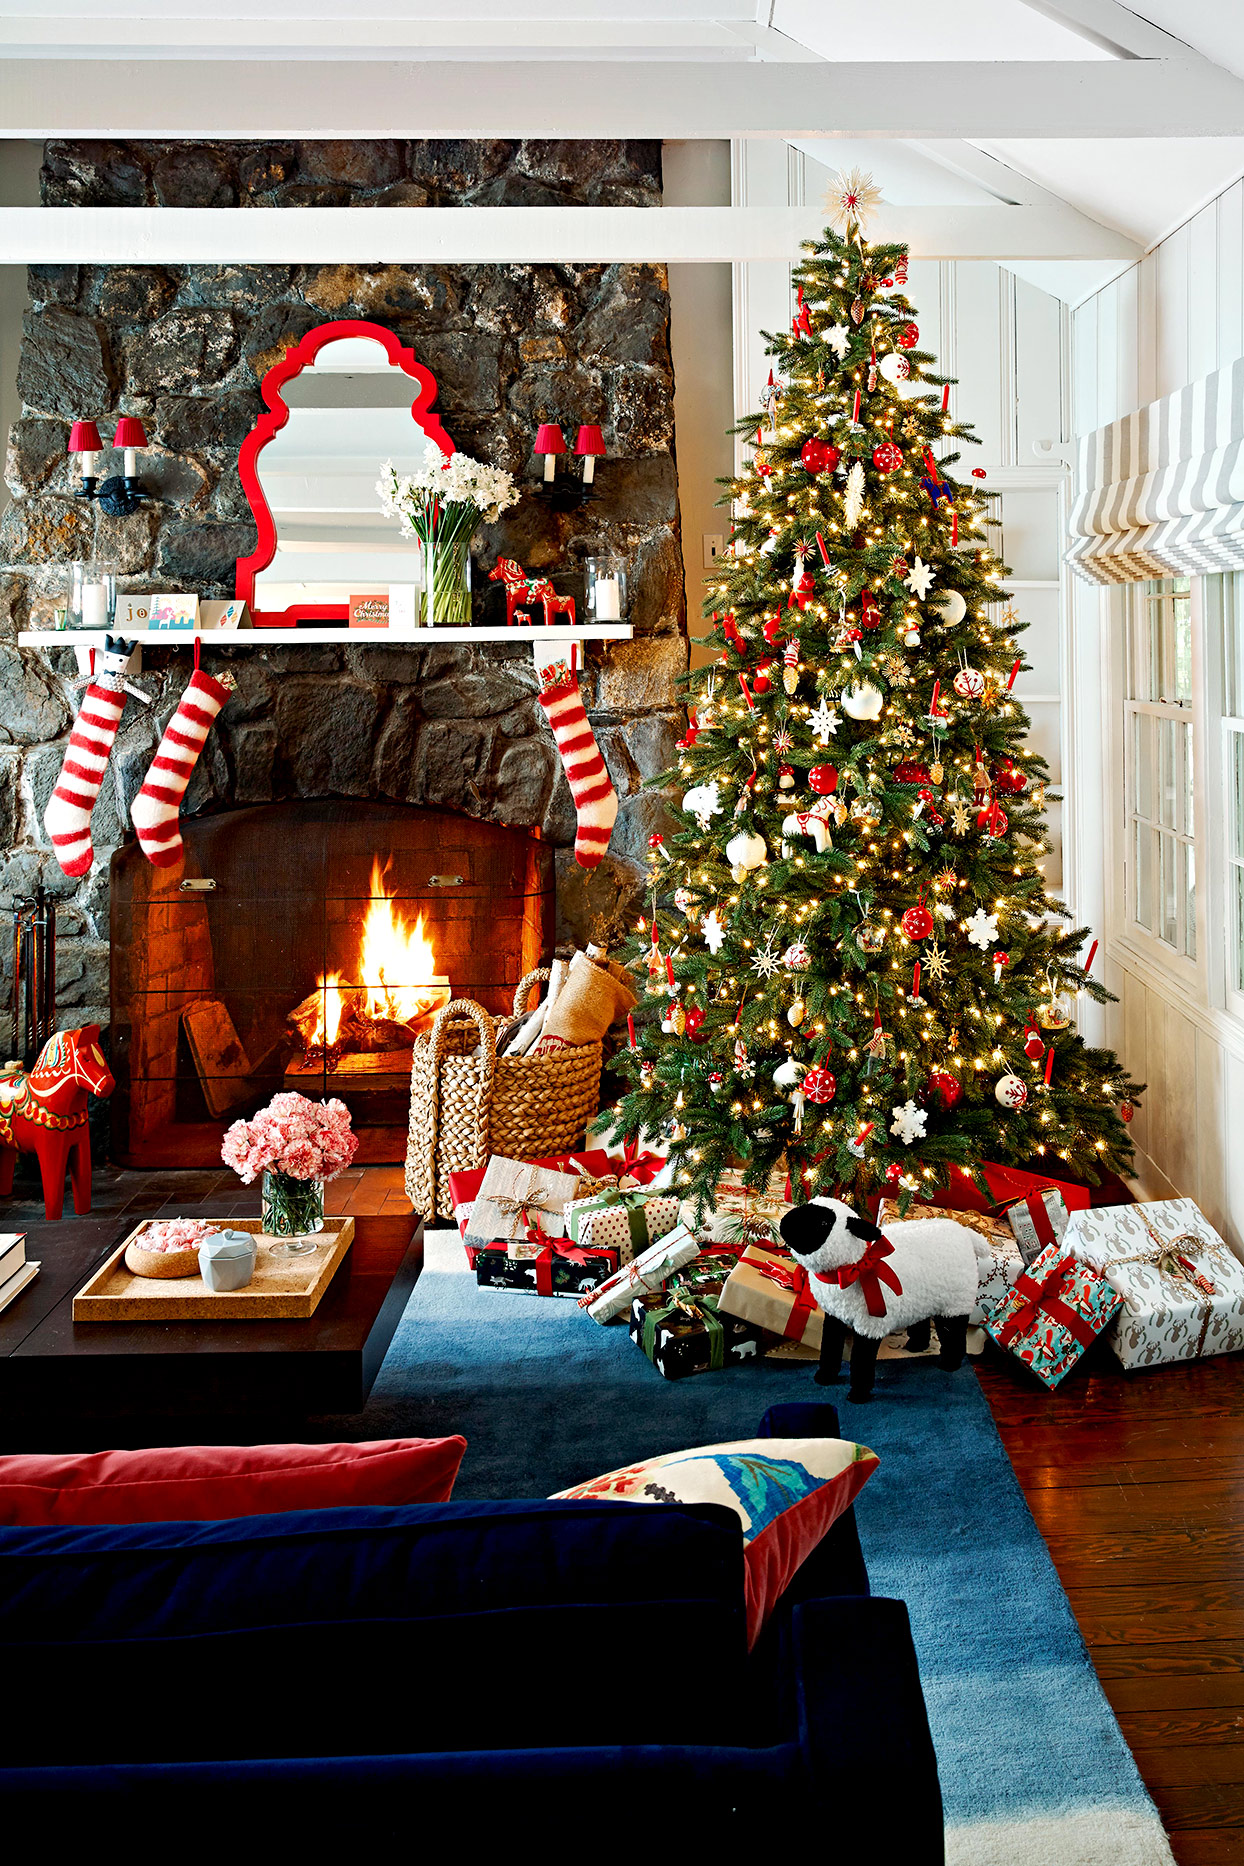 How to Put Lights on a Christmas Tree | Better Homes & Gardens